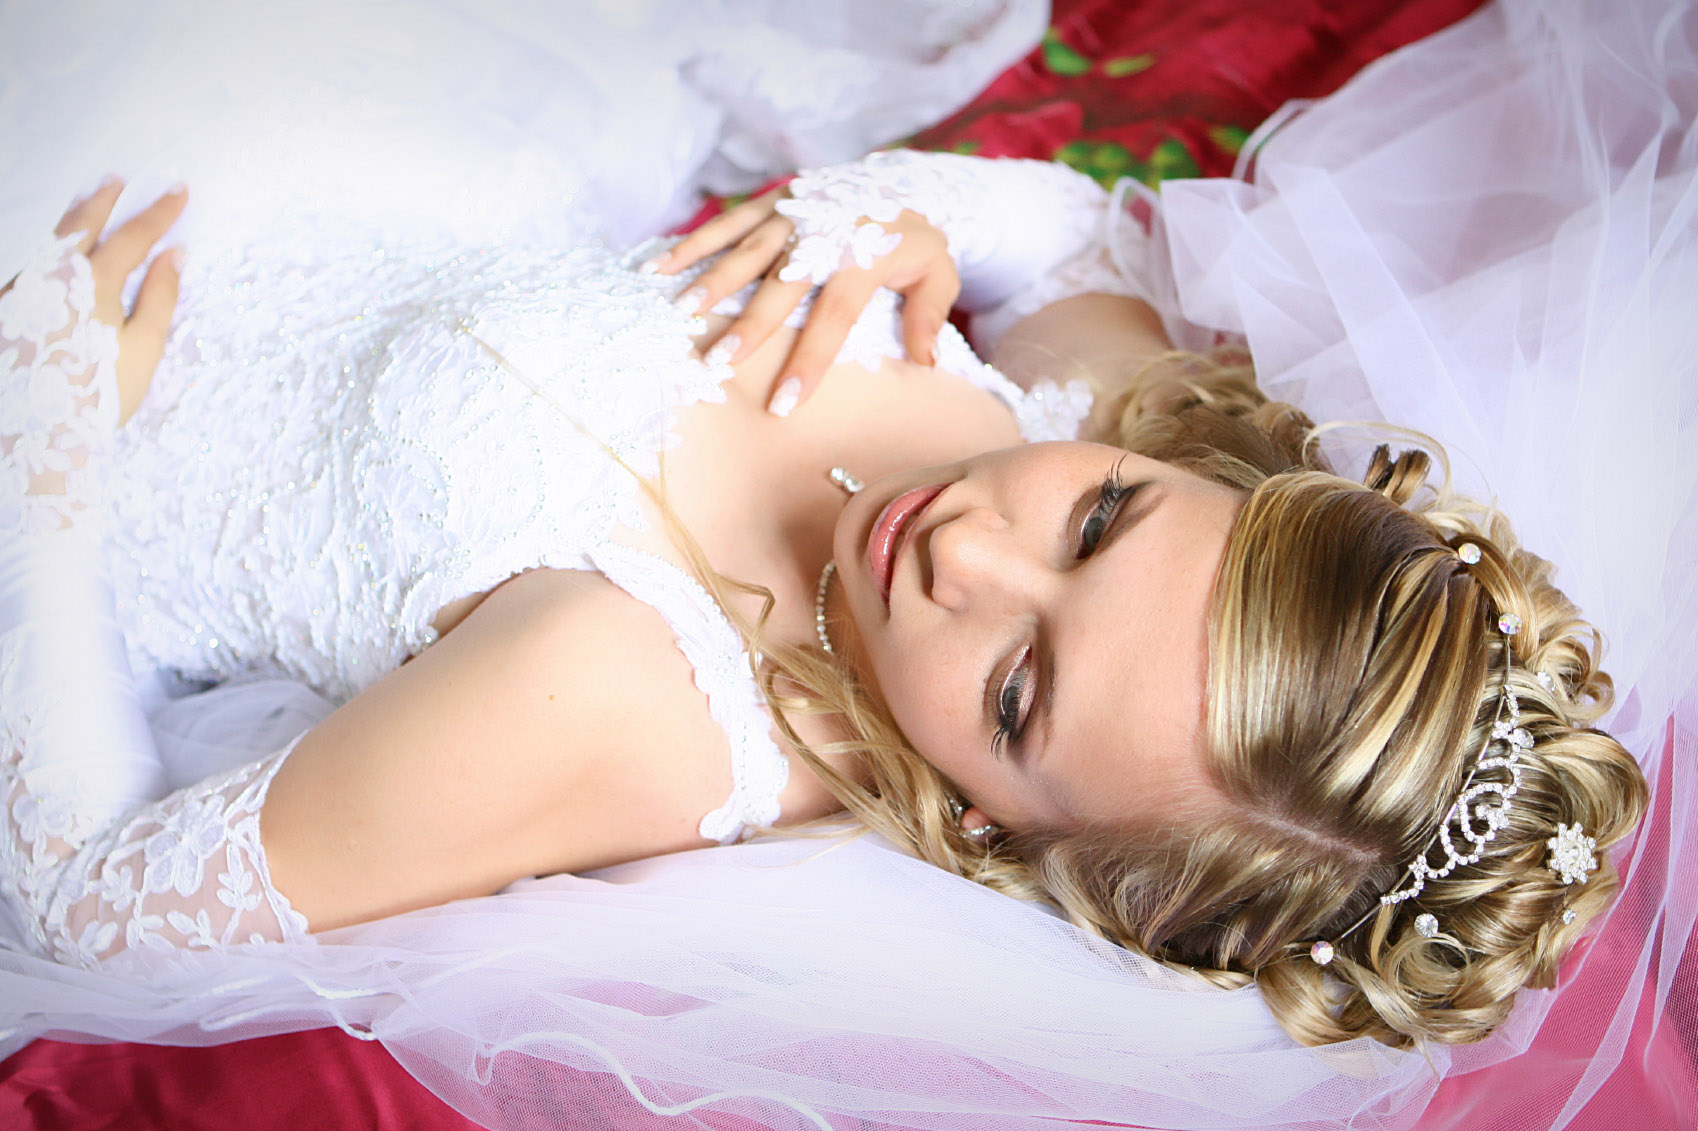 Studio 17 Salon has complete bridal hairstyling and make up services